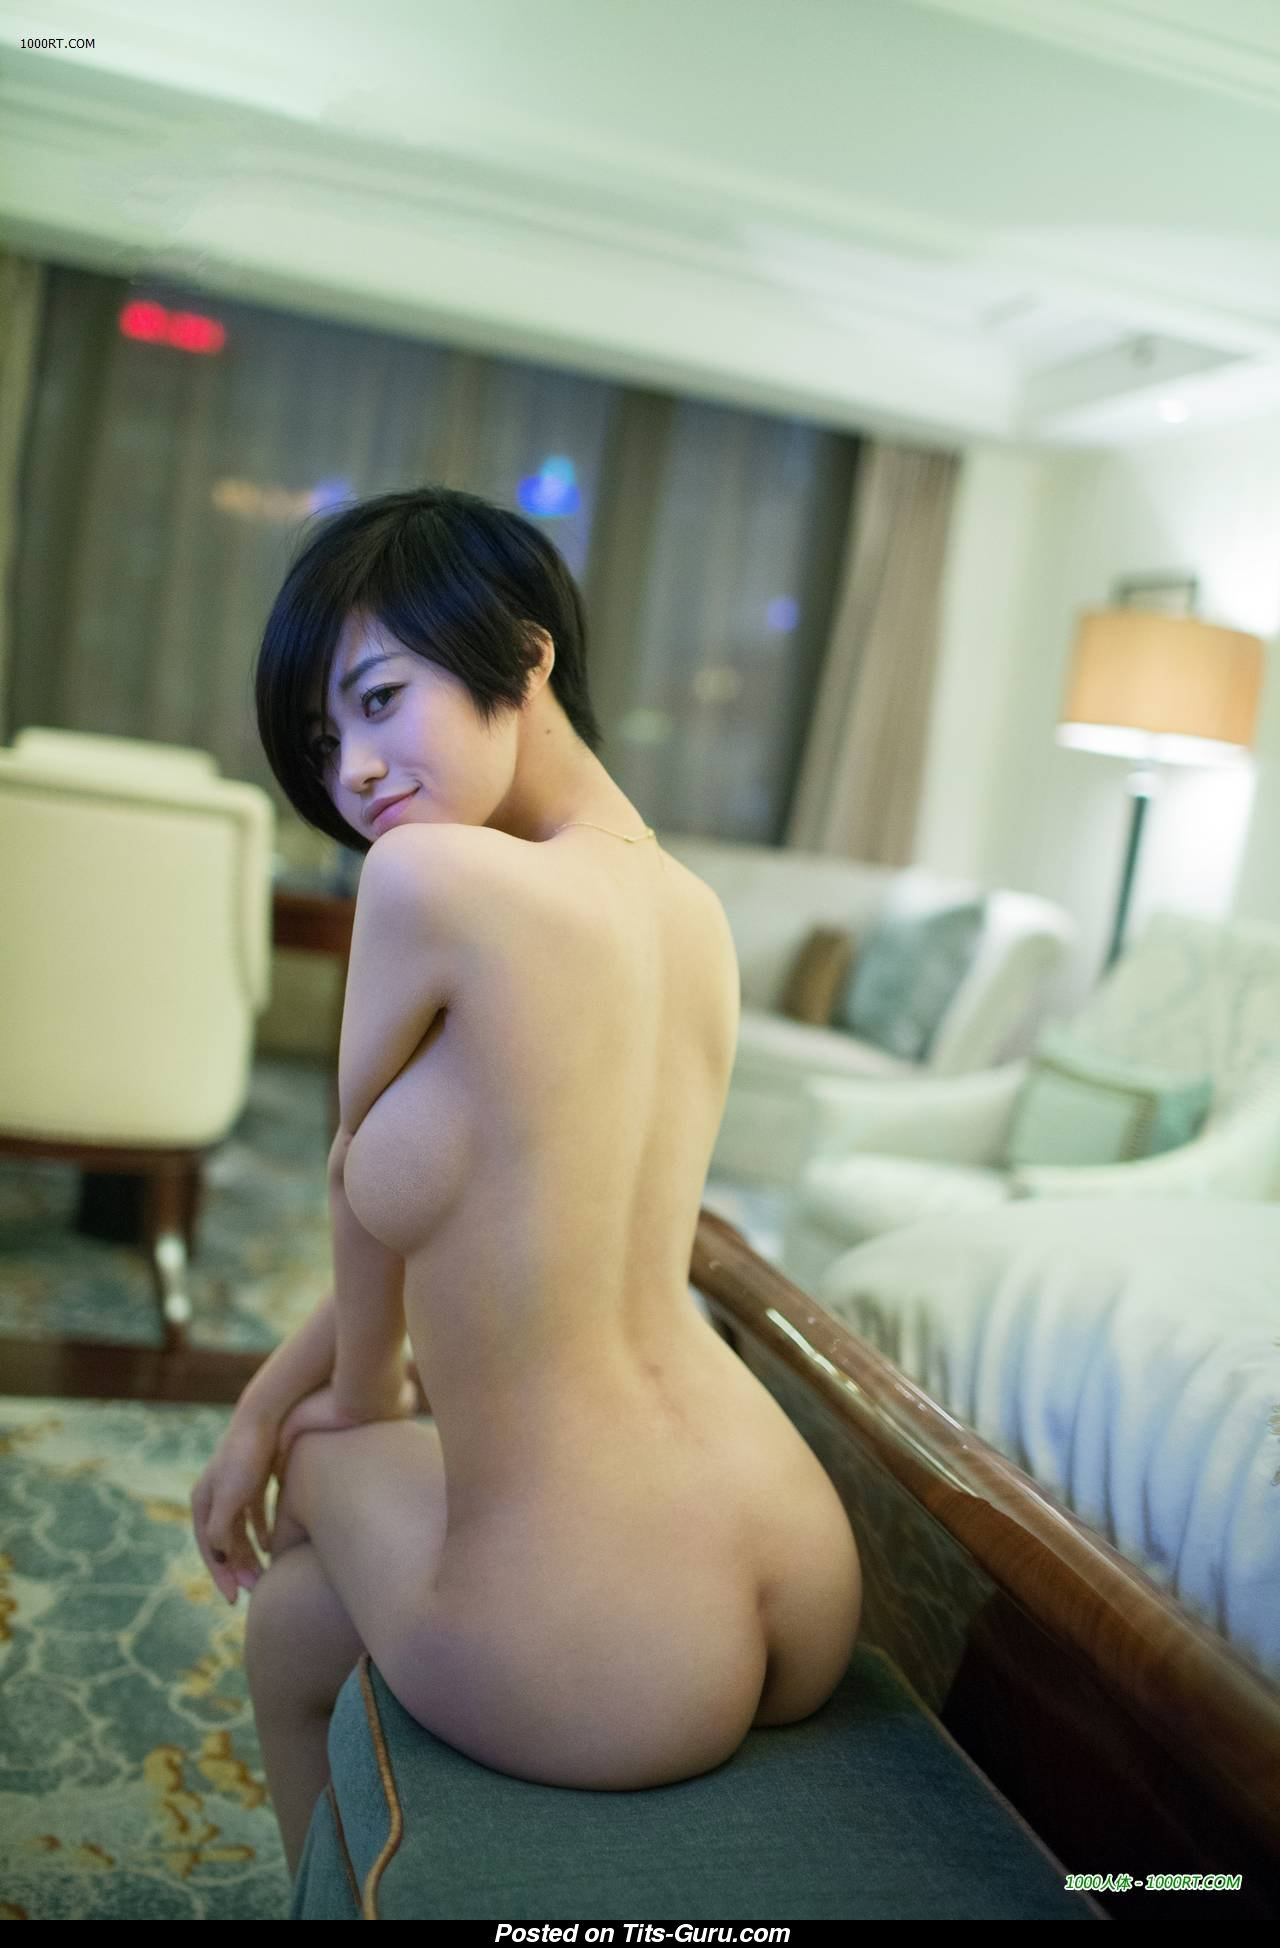 Lina - Asian Girl With Defenseless Sizable Tots Porn Foto -8865